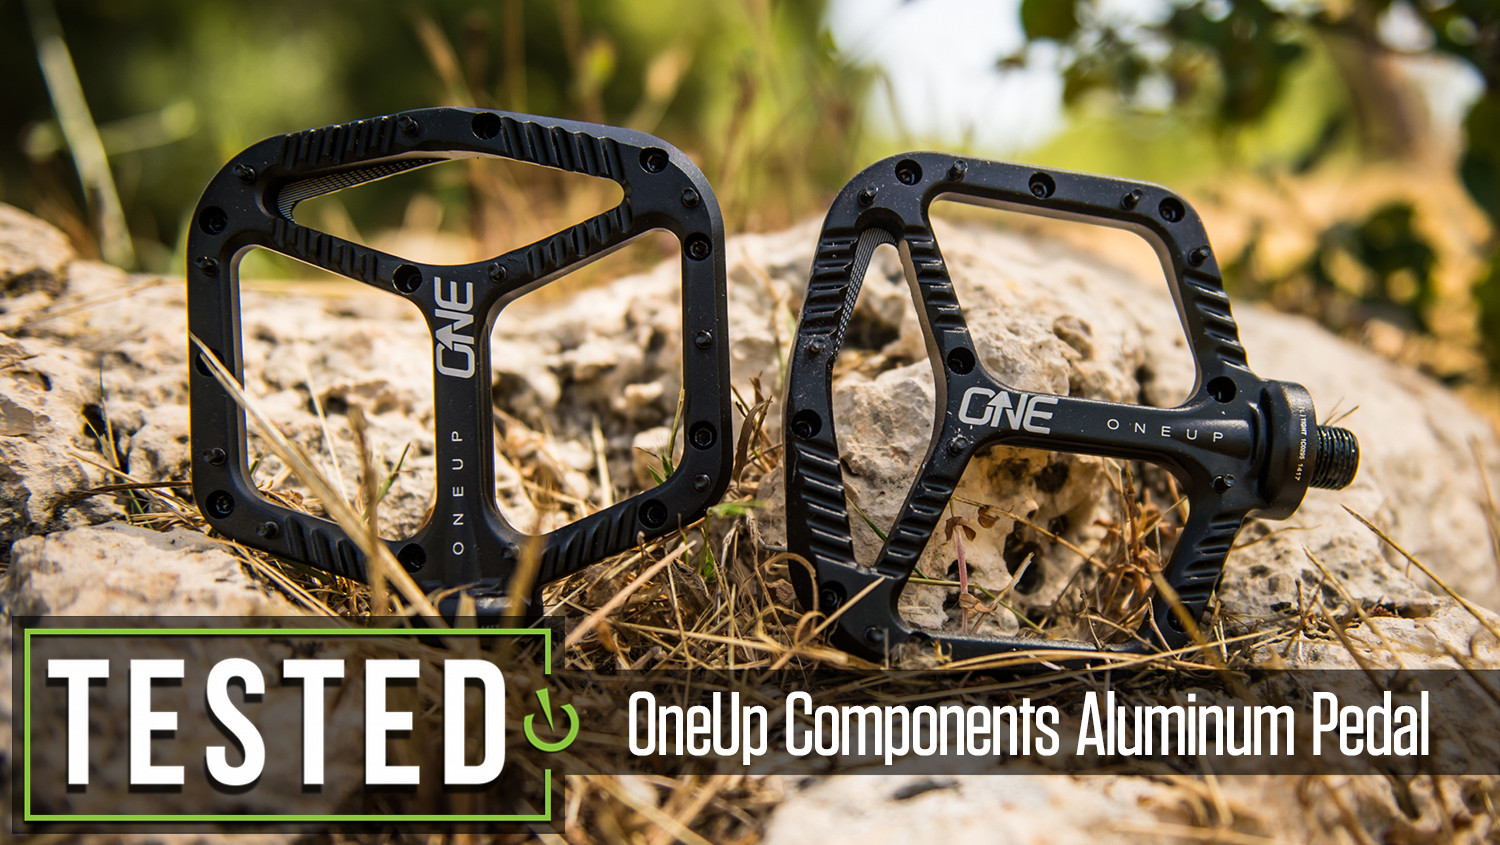 Tested: OneUp Components Aluminum Pedal